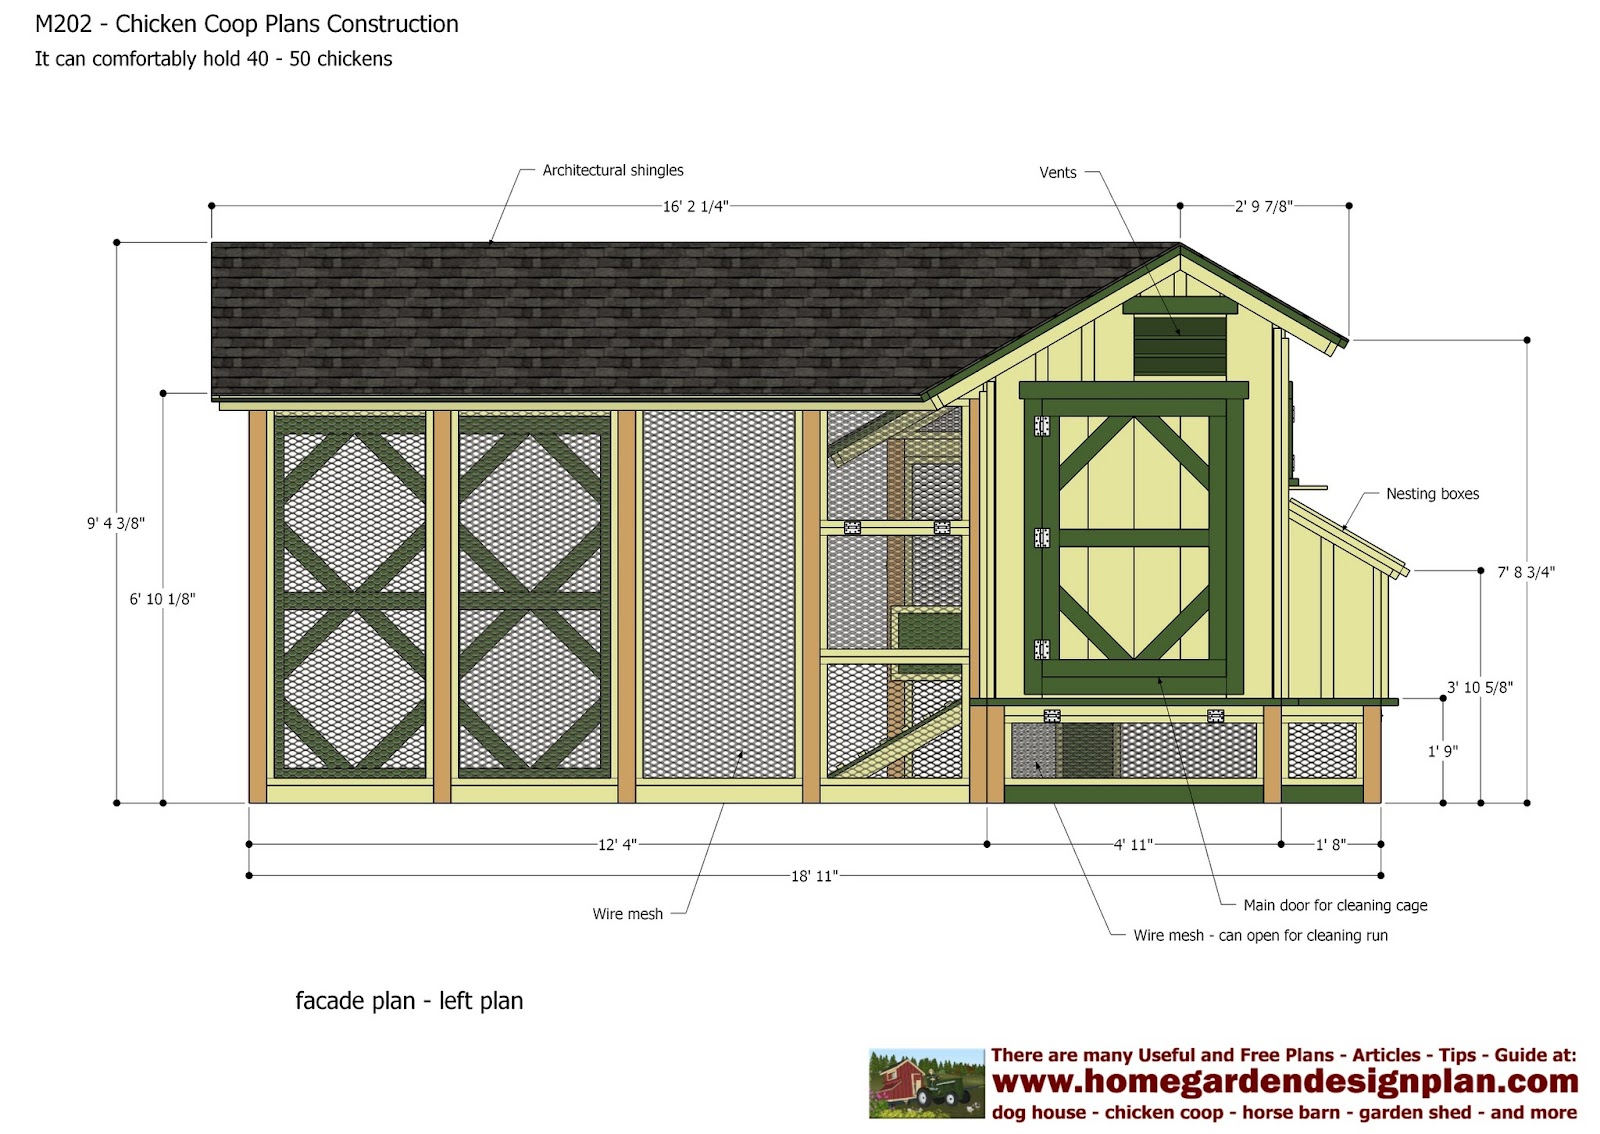 Denny yam free pdf chicken coop plans for Chicken coop plans free pdf